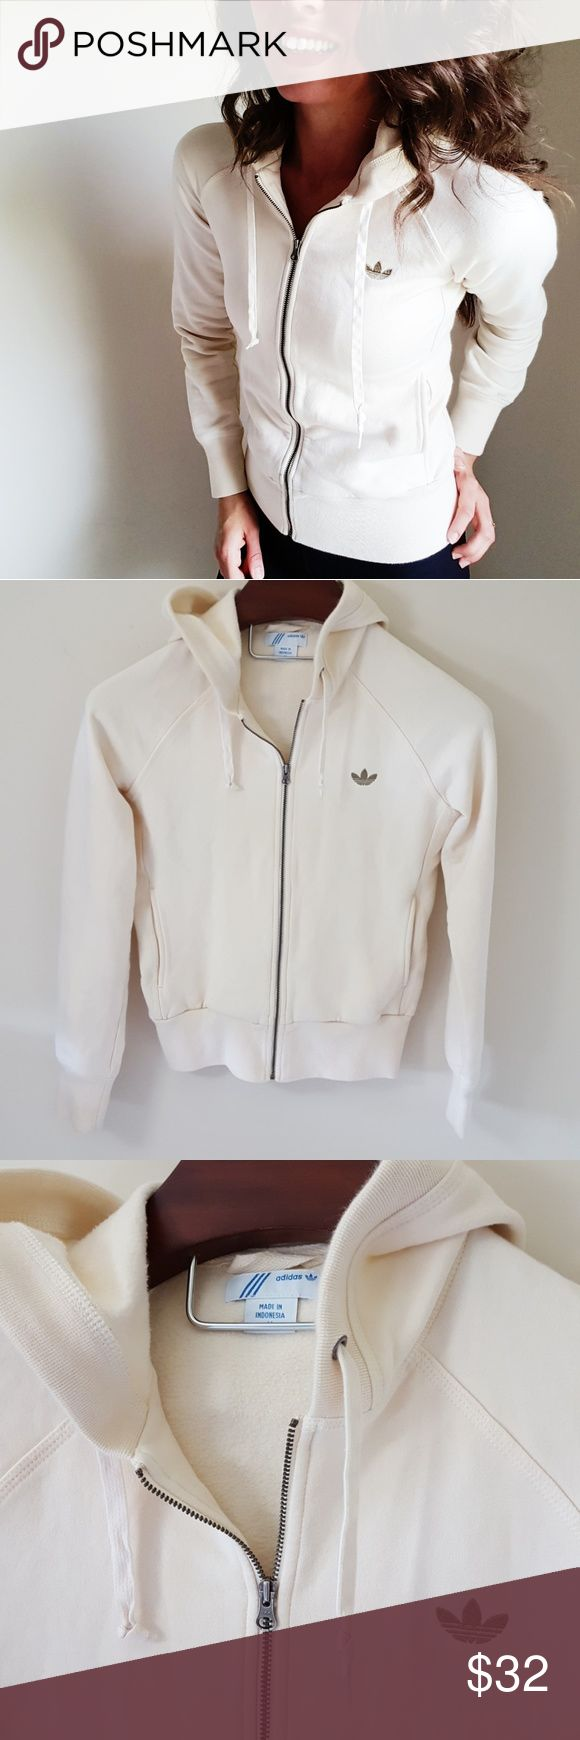 Adidas | cream zip up hoodie In excellent condition! Adidas cream colored zip up hoodie, size medium, but could easily fit a small. Small logo on front!  Used item, some signs of wear shown by pictures ❤ Bundle up! Offers always welcome:) adidas Tops Sweatshirts & Hoodies